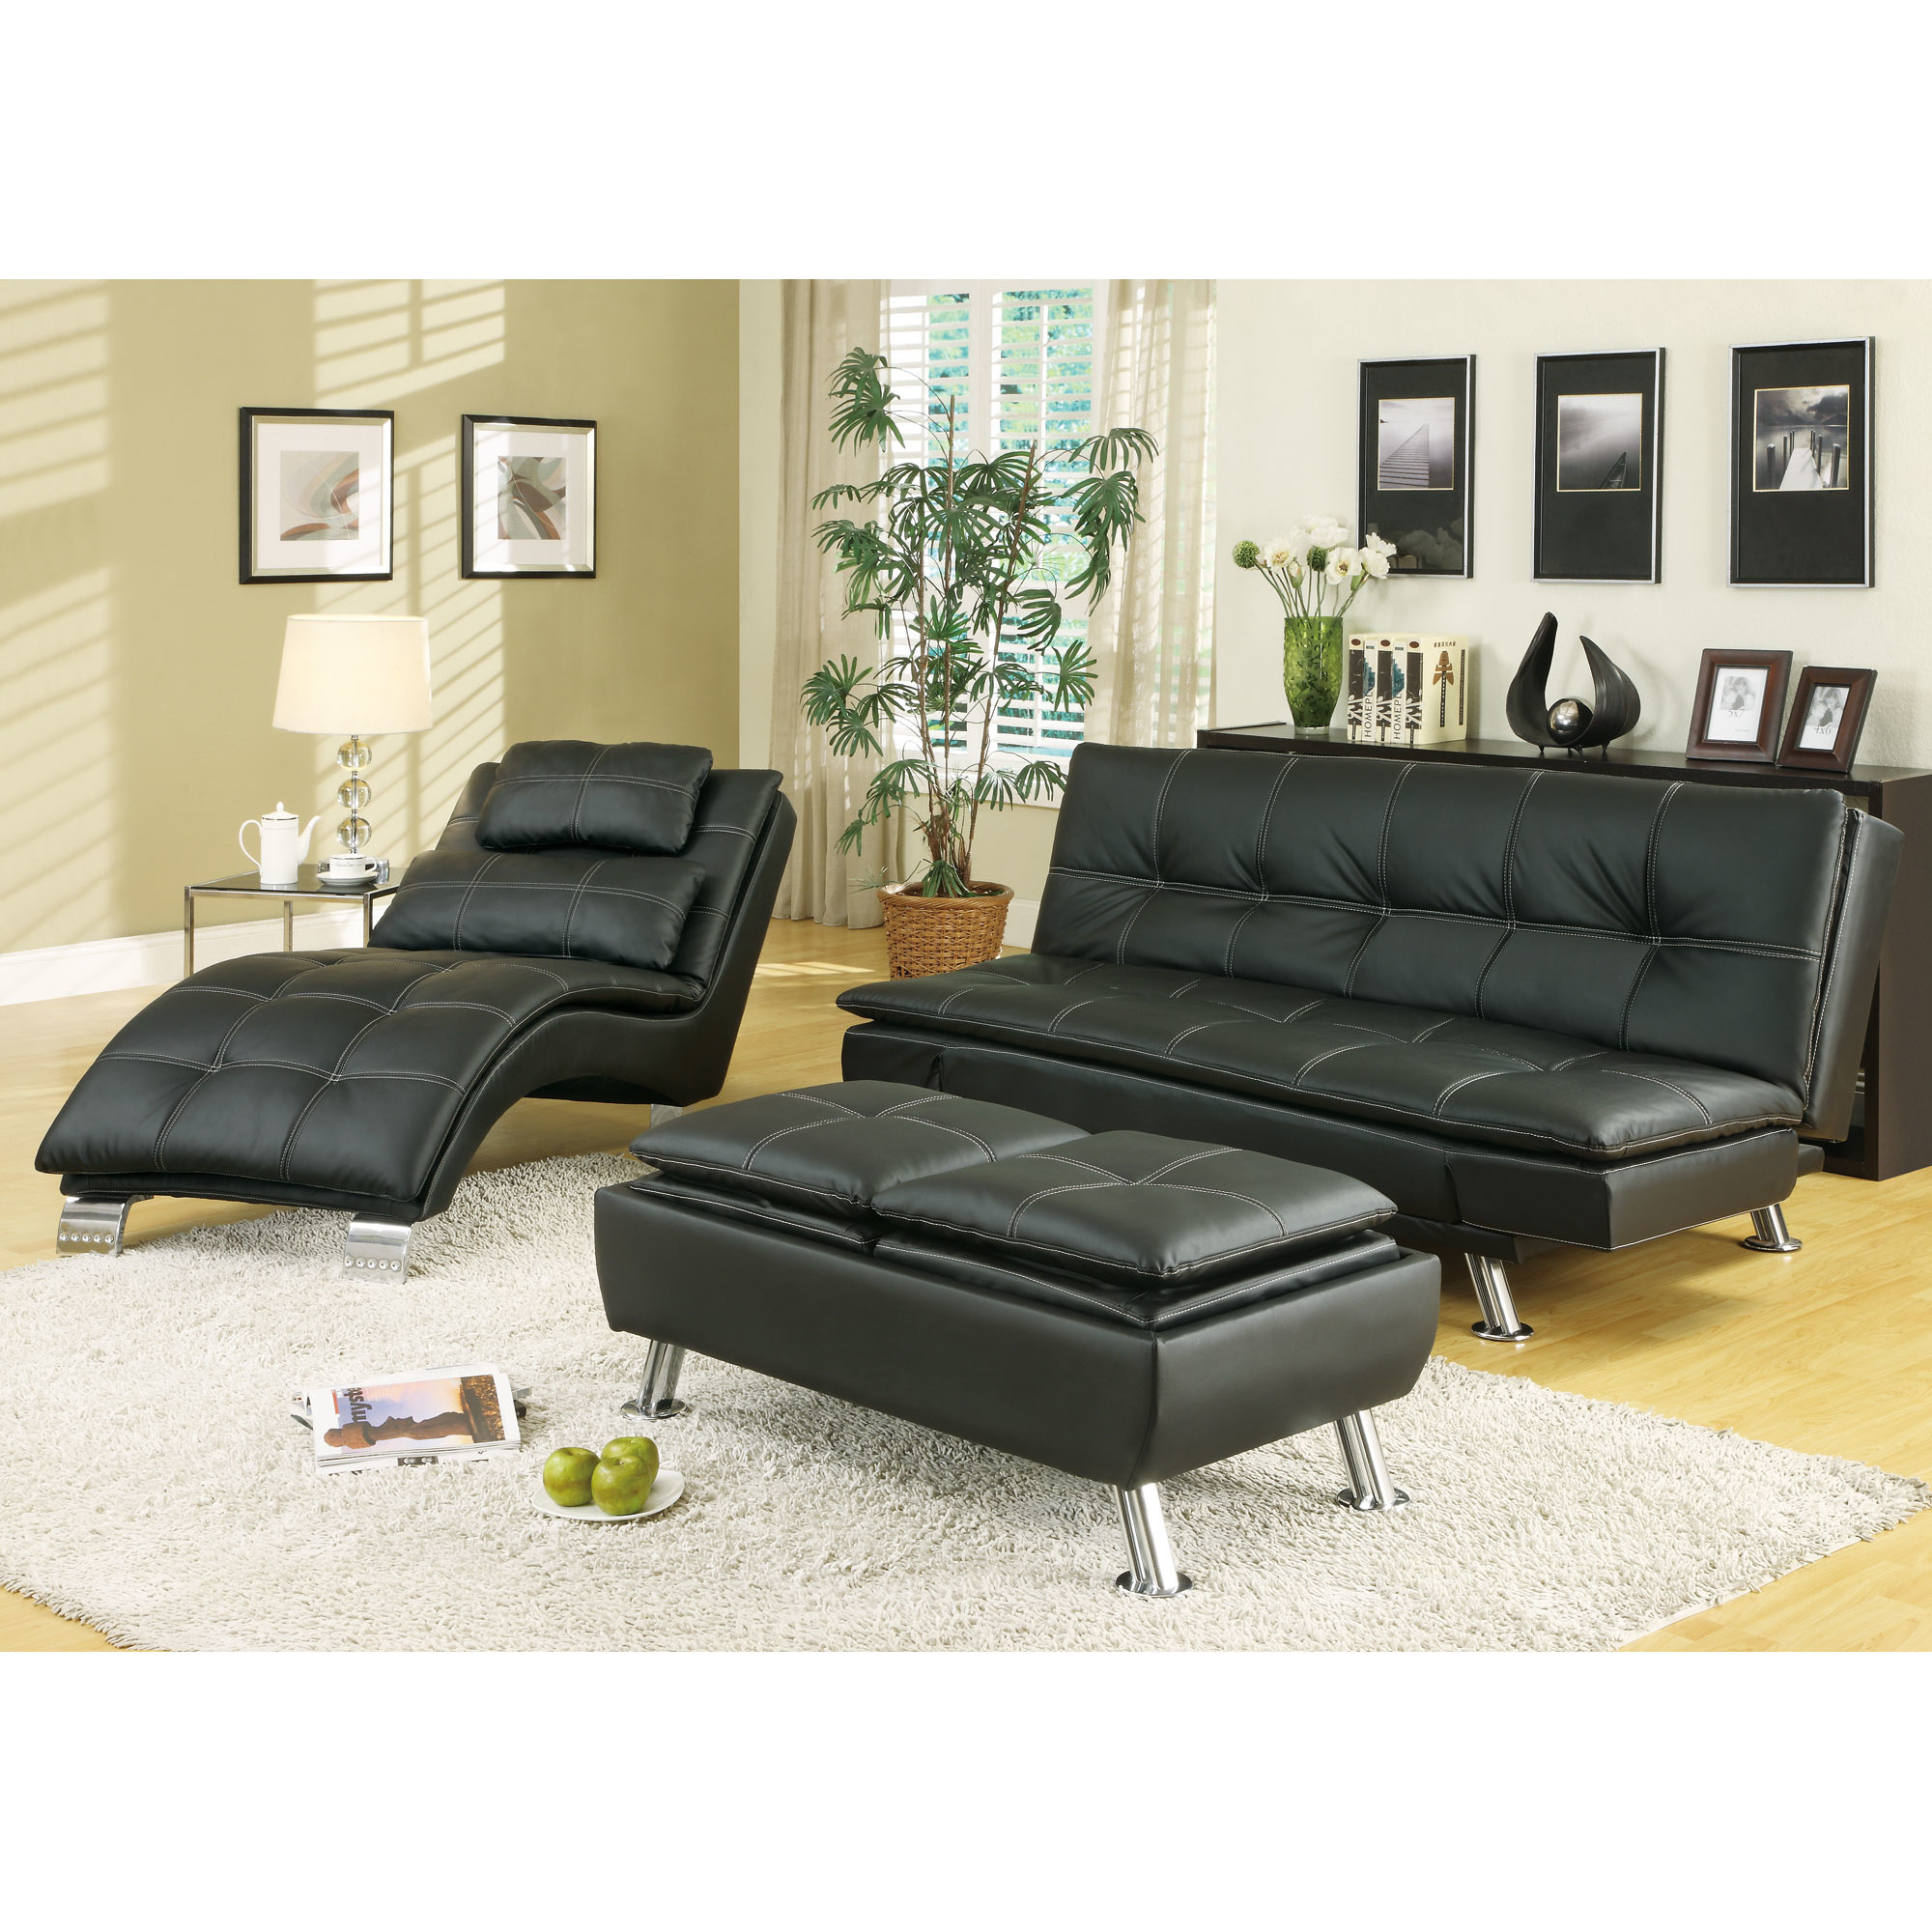 Best ideas about Wayfair Living Room Furniture . Save or Pin Wildon Home Sleeper Sofa & Reviews Now.